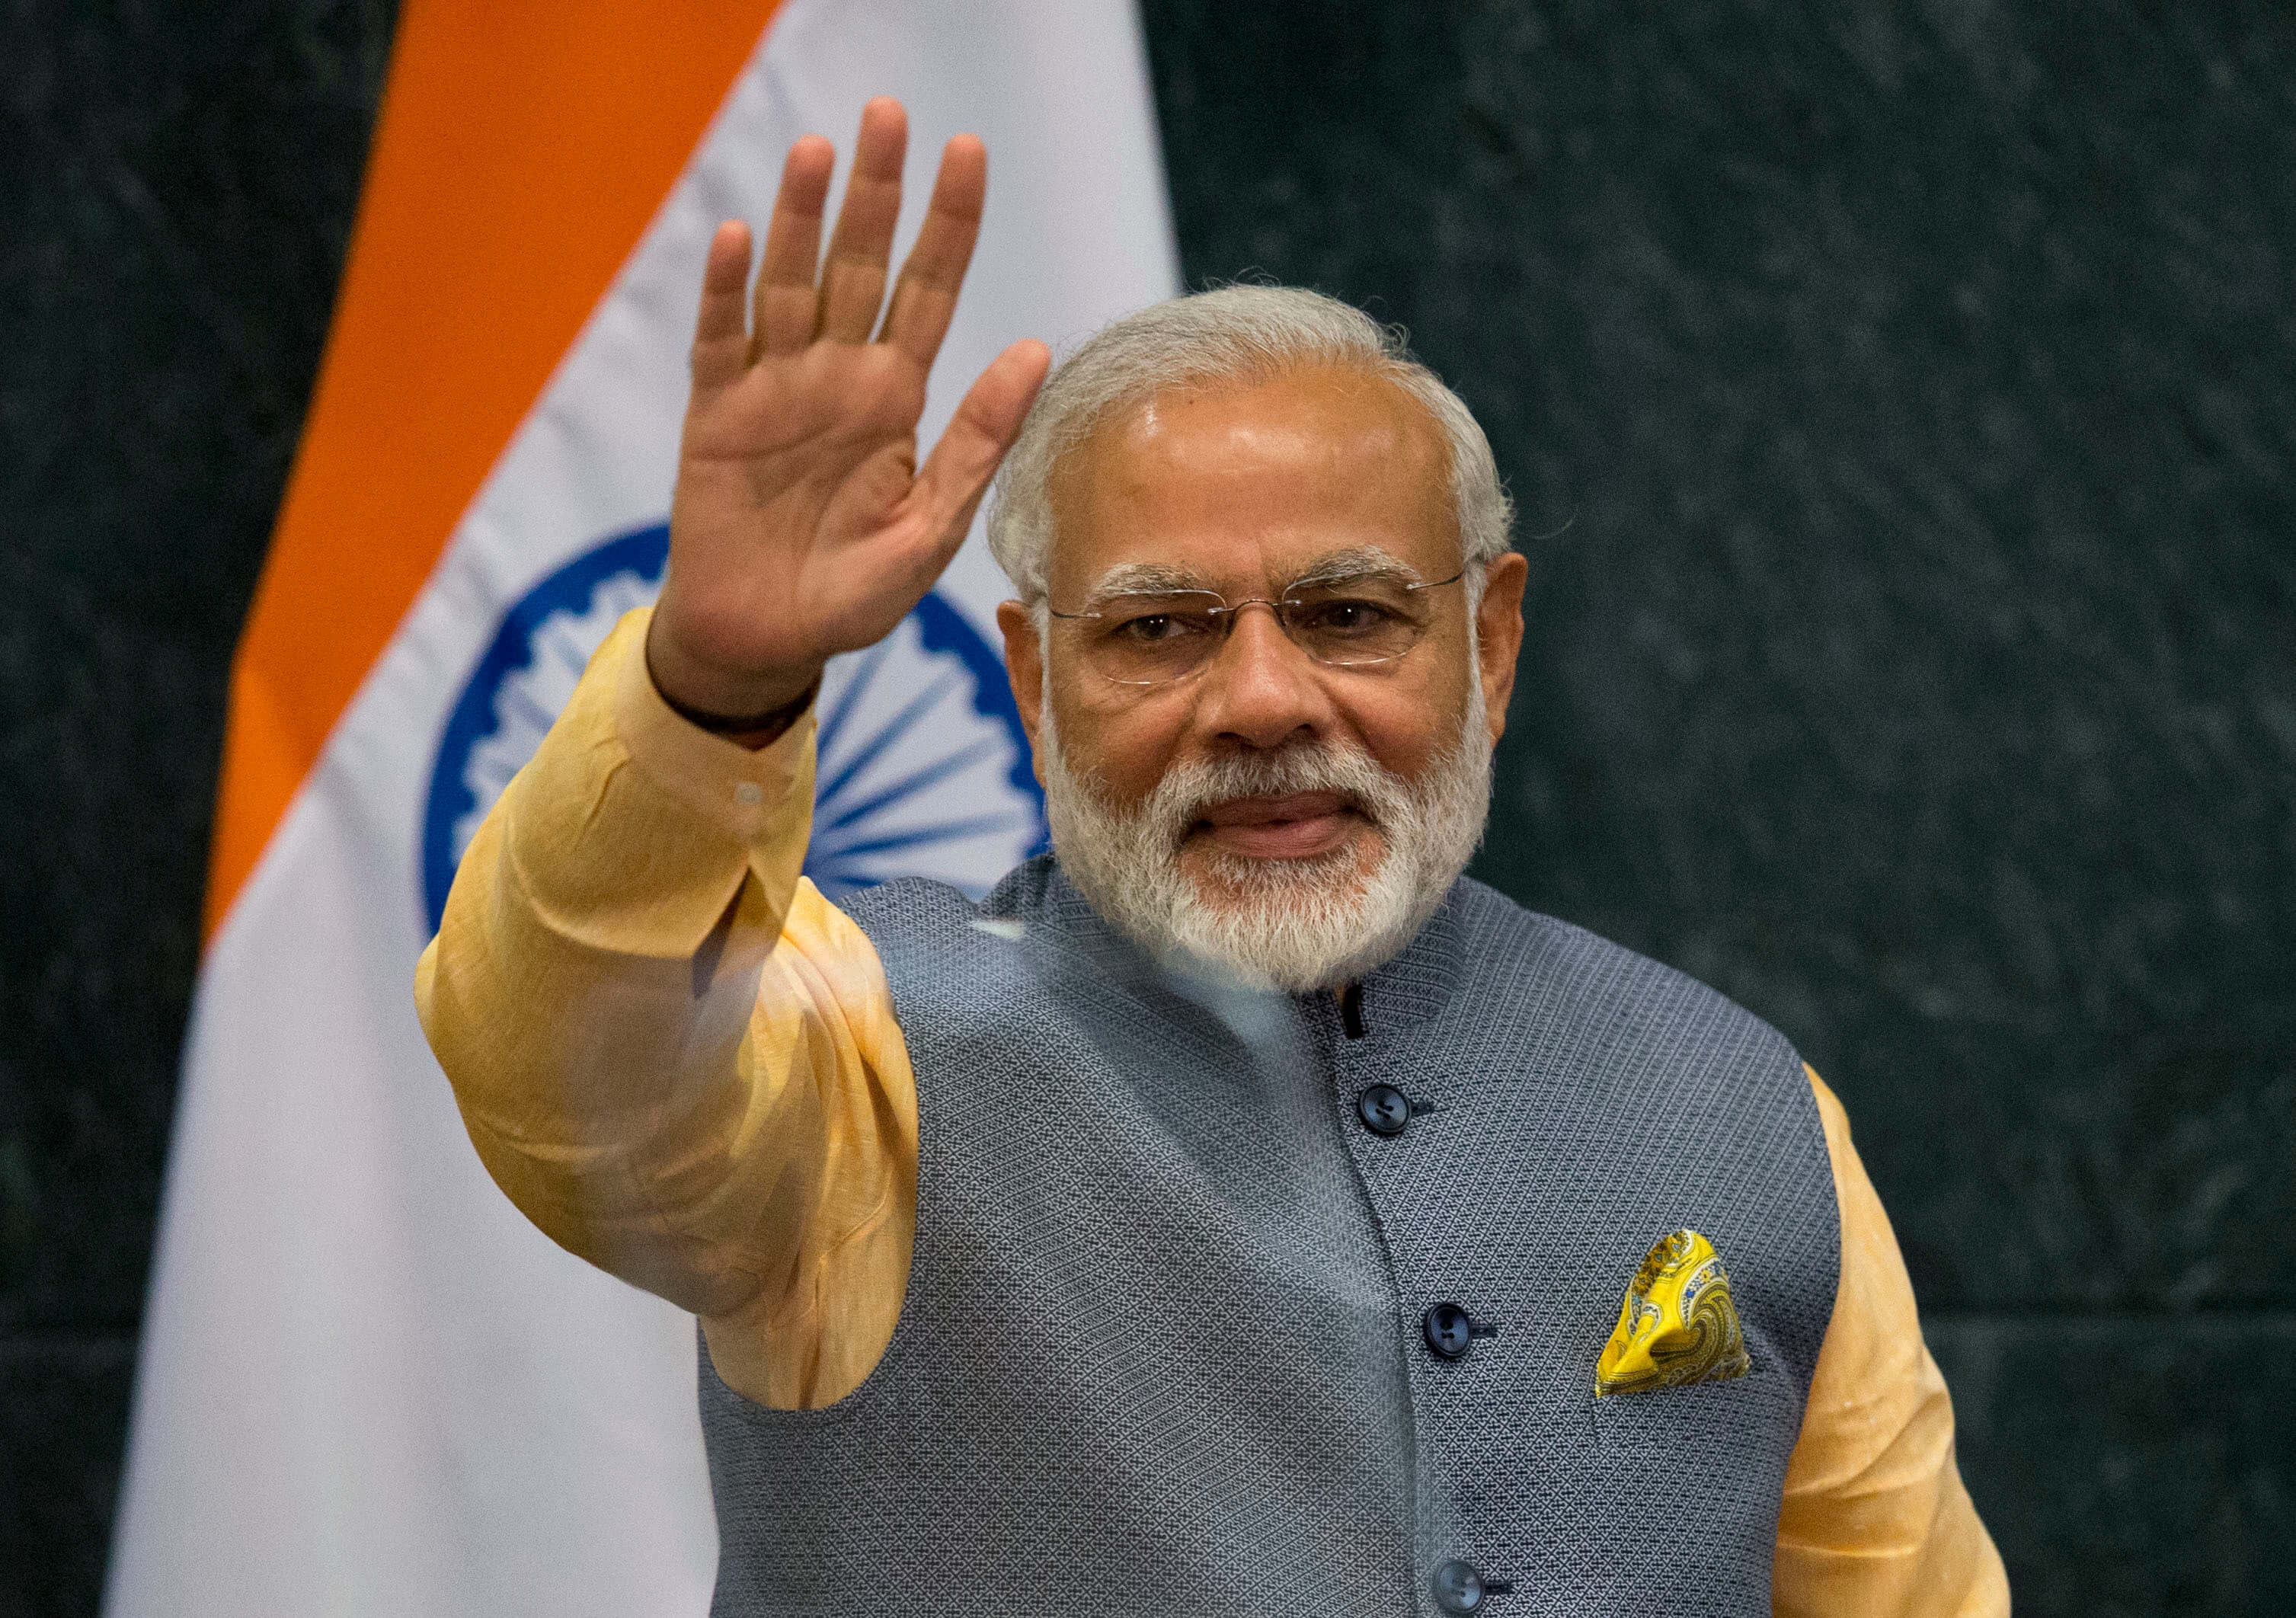 Prime Minister to Inaugurate FICCI's 90th AGM